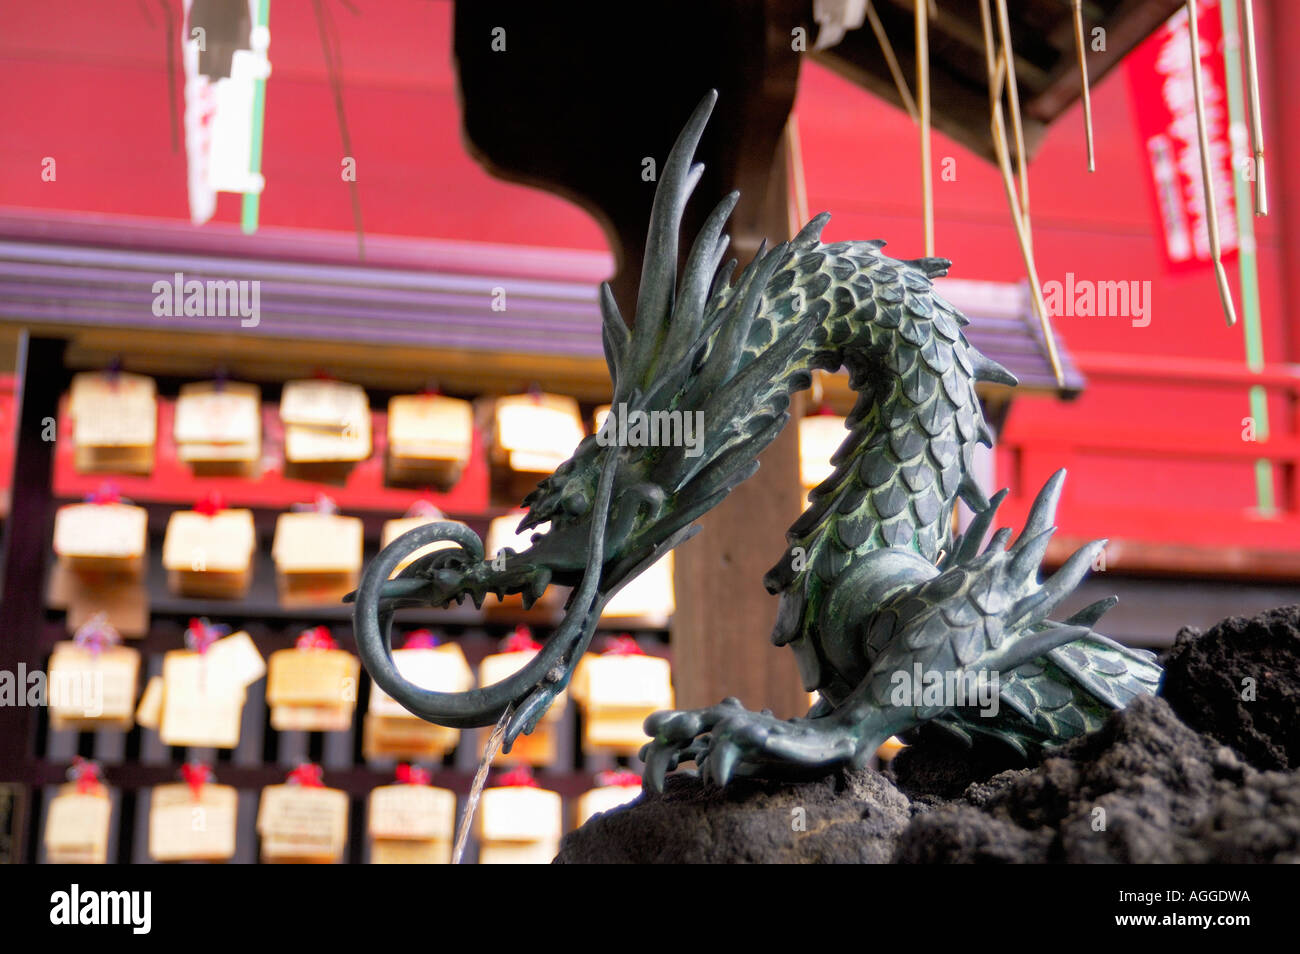 statue of dragon with a running water tap, Tokyo, Japan - Stock Image